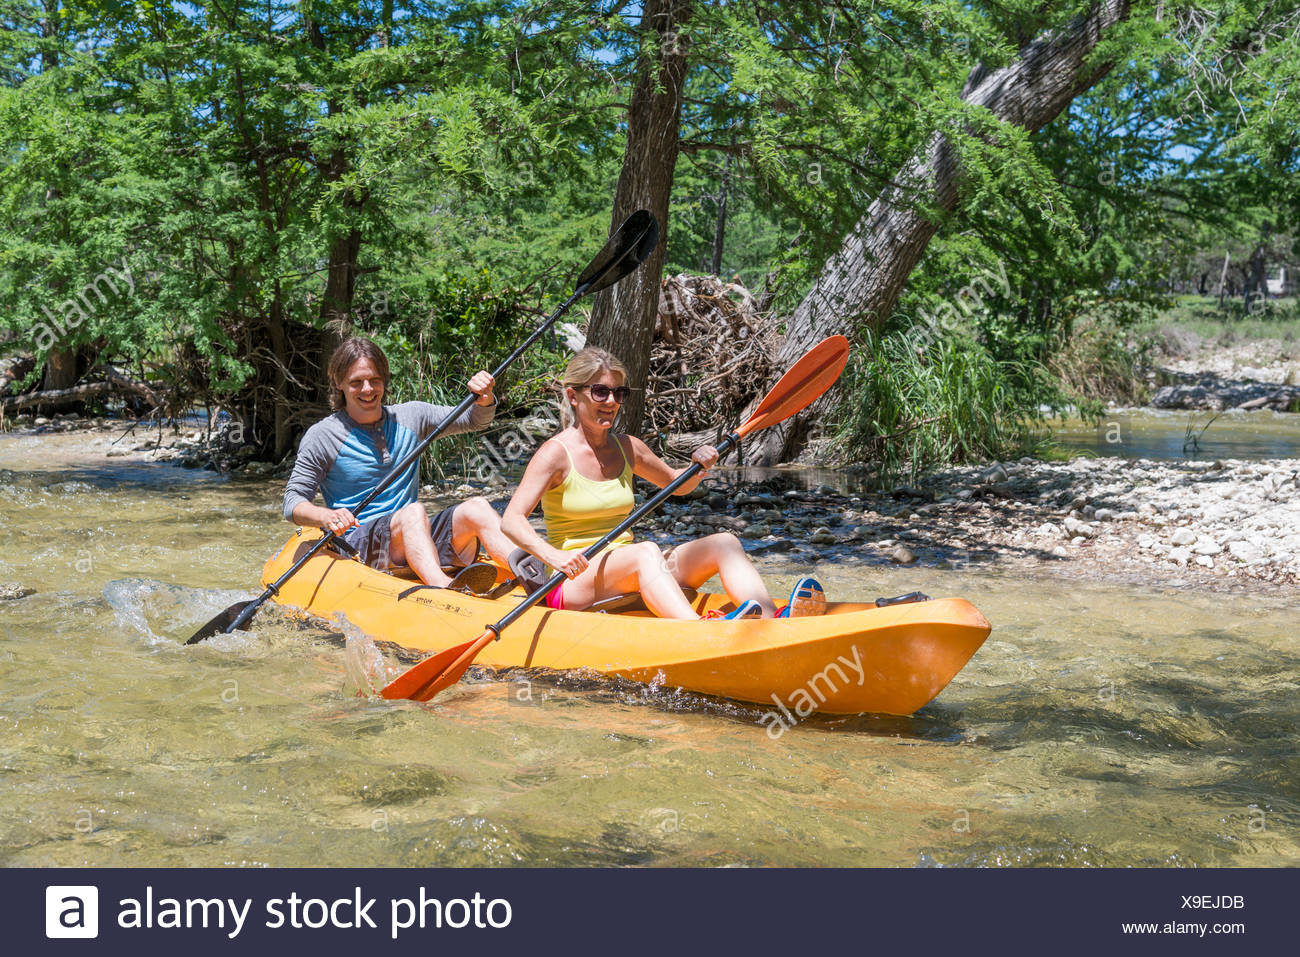 Woman Canoeing Down River Stock Photos & Woman Canoeing Down River